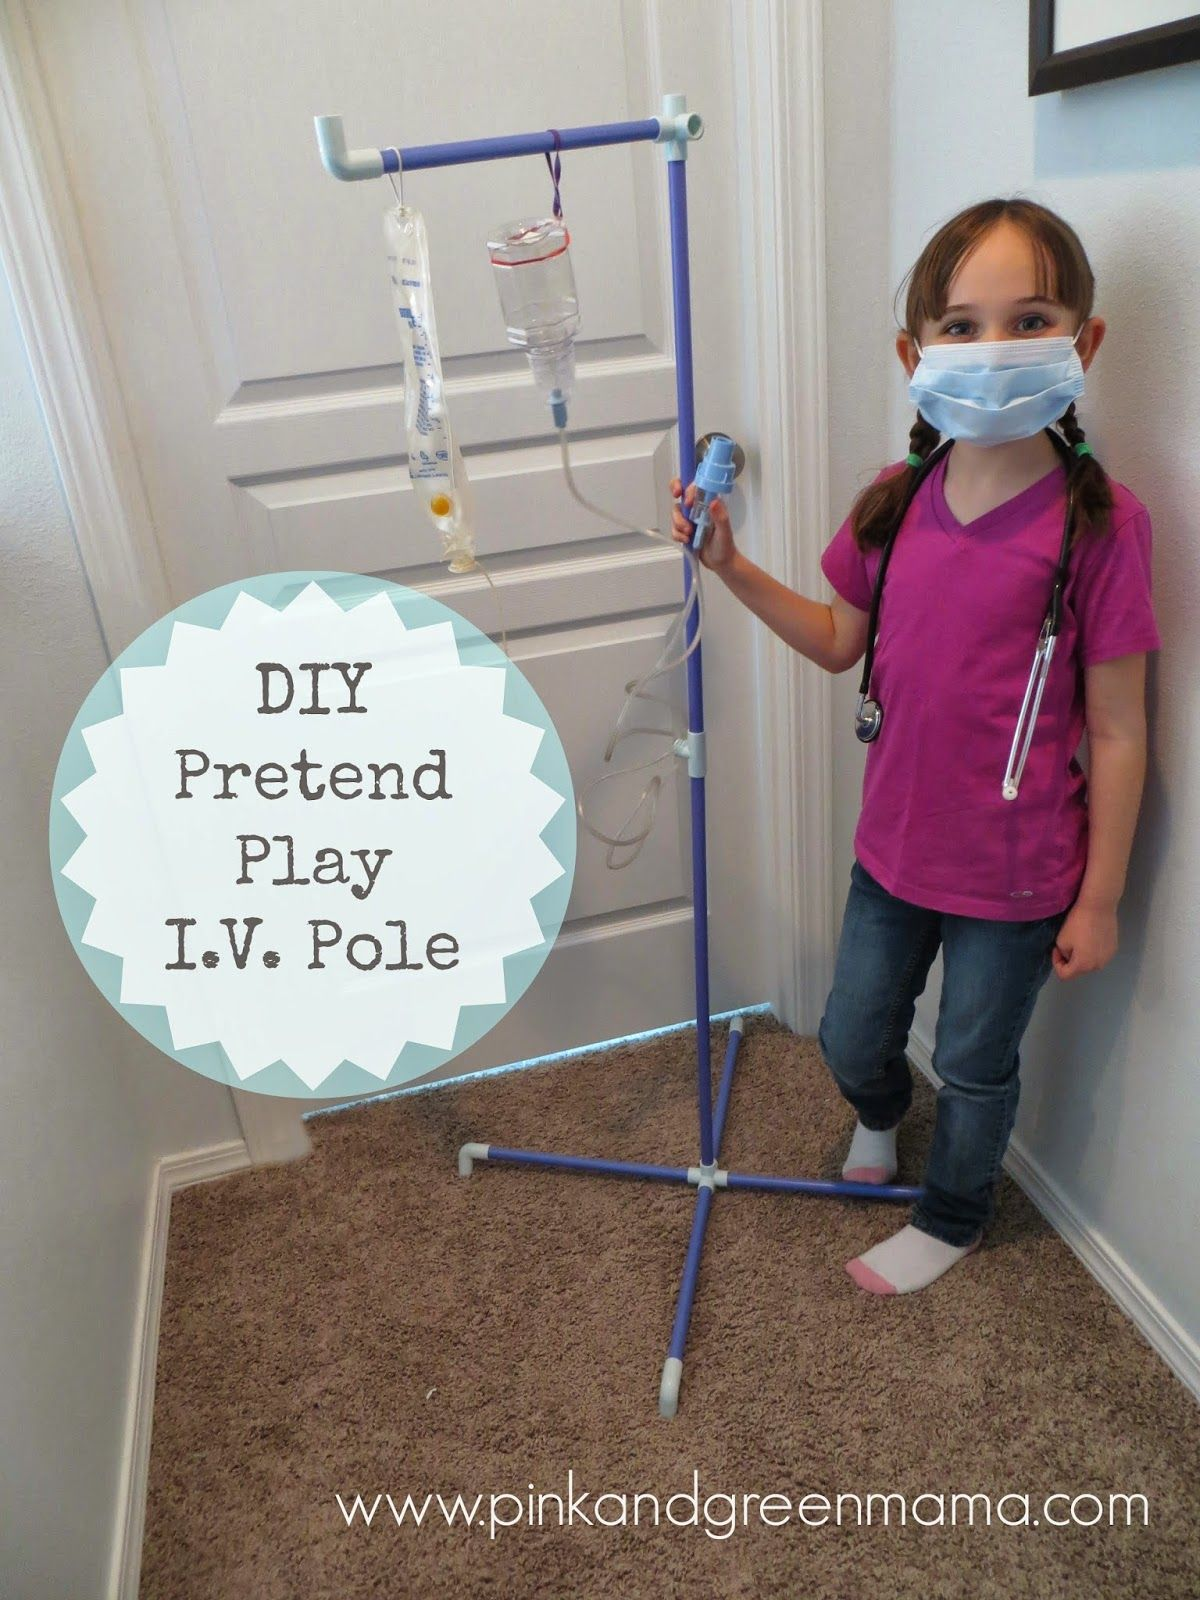 DIY Pretend Play IV Pole Vet Imaginary Play Kids Fort Magic